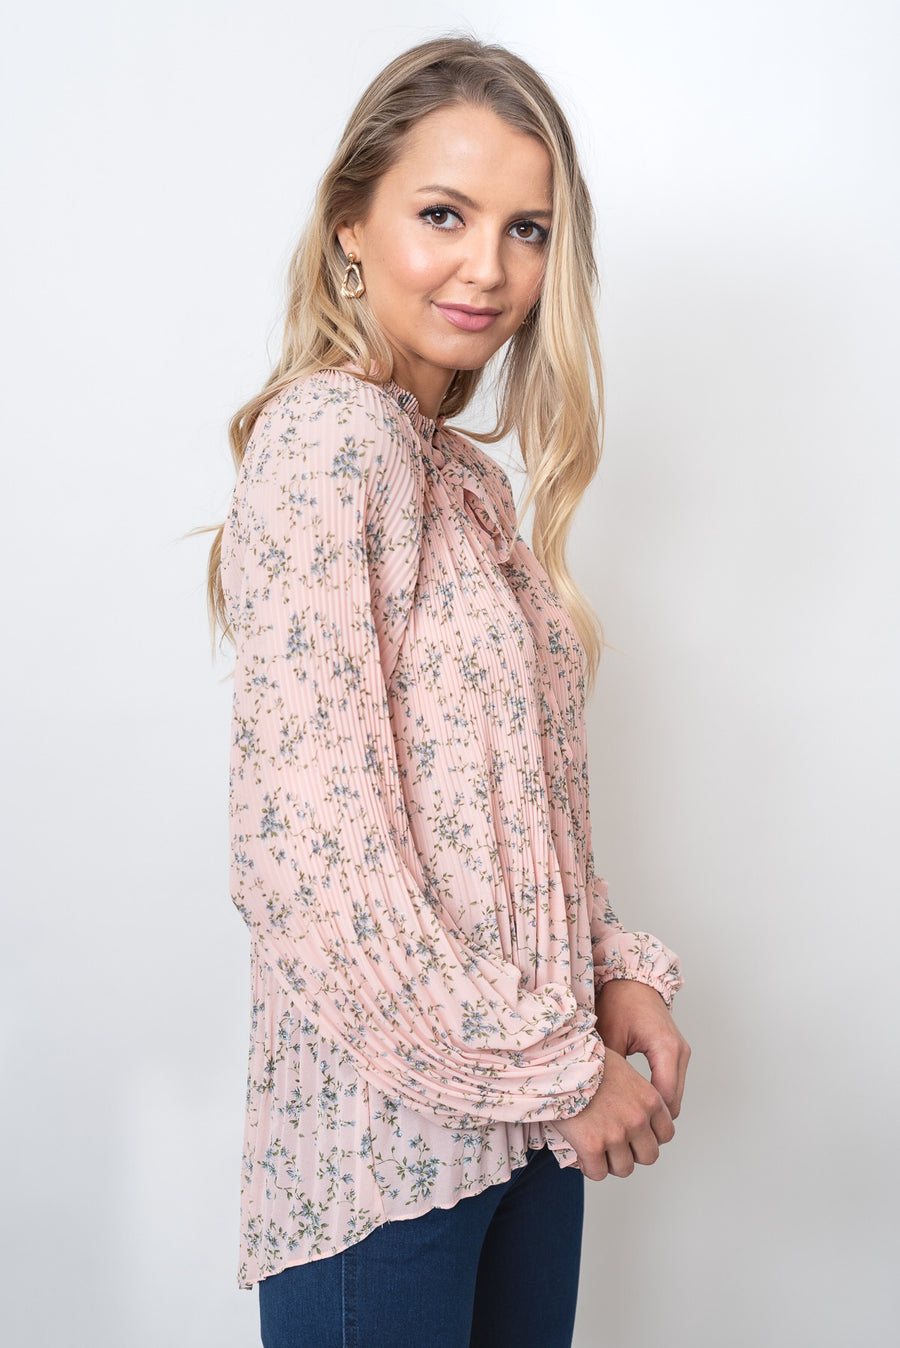 MADELINE PLEAT TOP - PINK FLORAL PRINT